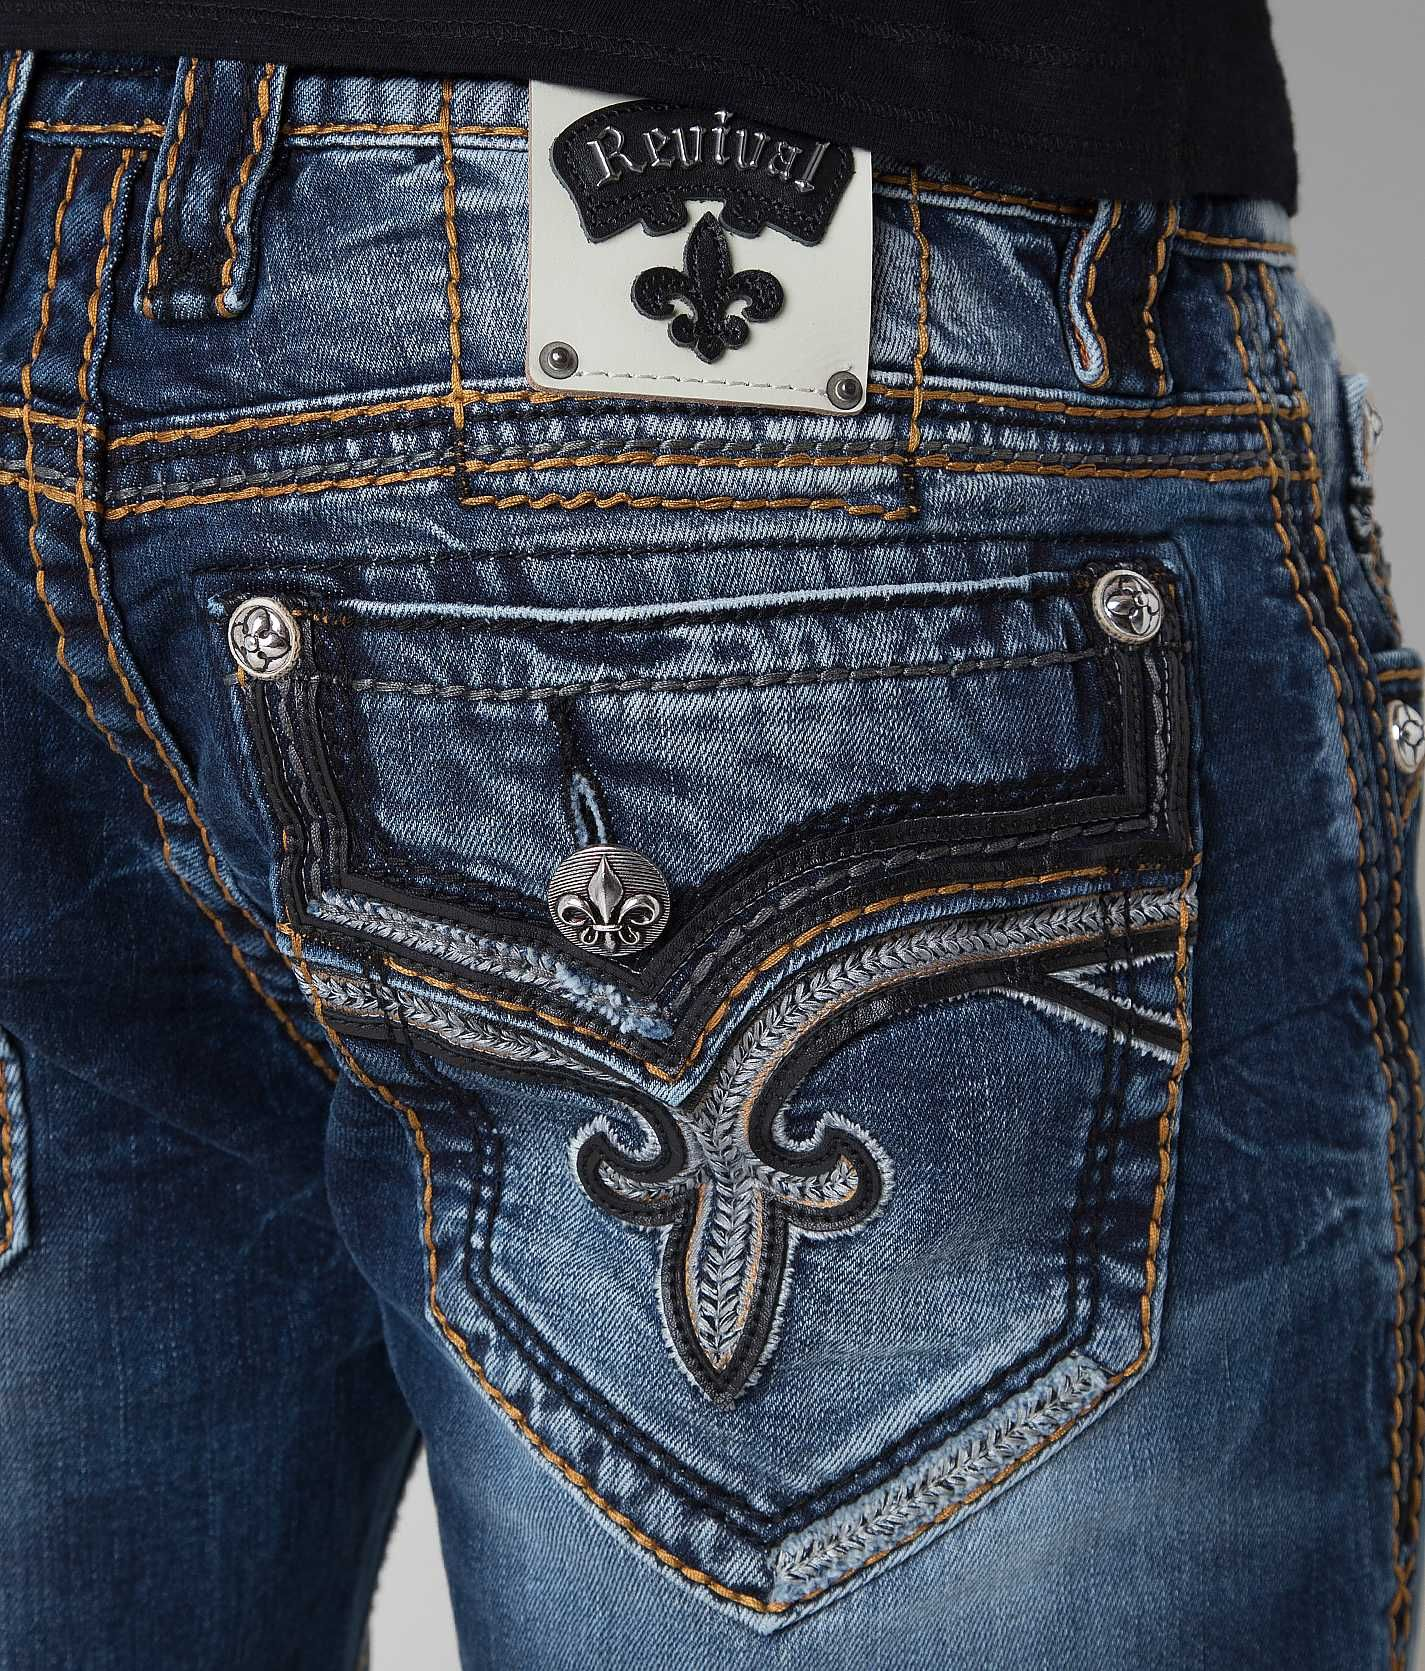 421091126f8 Rock Revival Foxe Relaxed Straight Jean - Men s Jeans